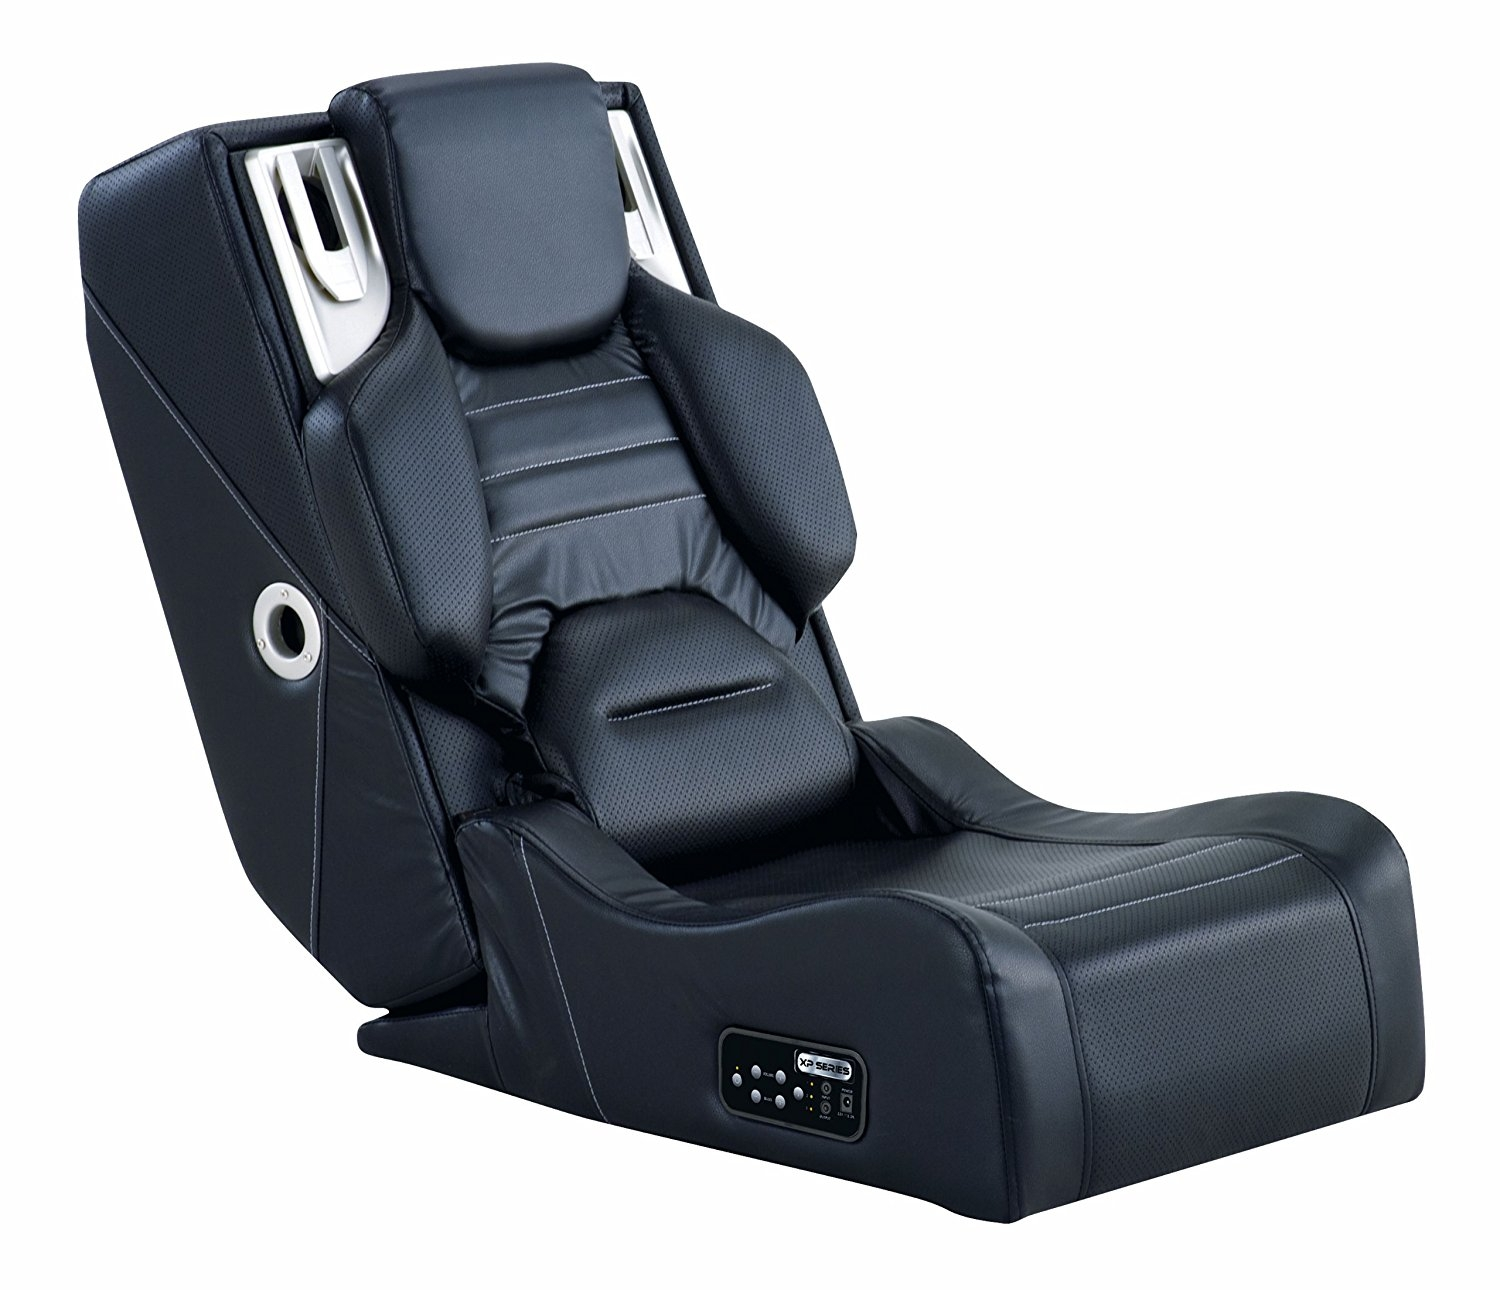 Reviewing The Best Affordable Chairs For Gaming Best Recliners Pertaining To Gaming Sofa Chairs (Image 12 of 15)